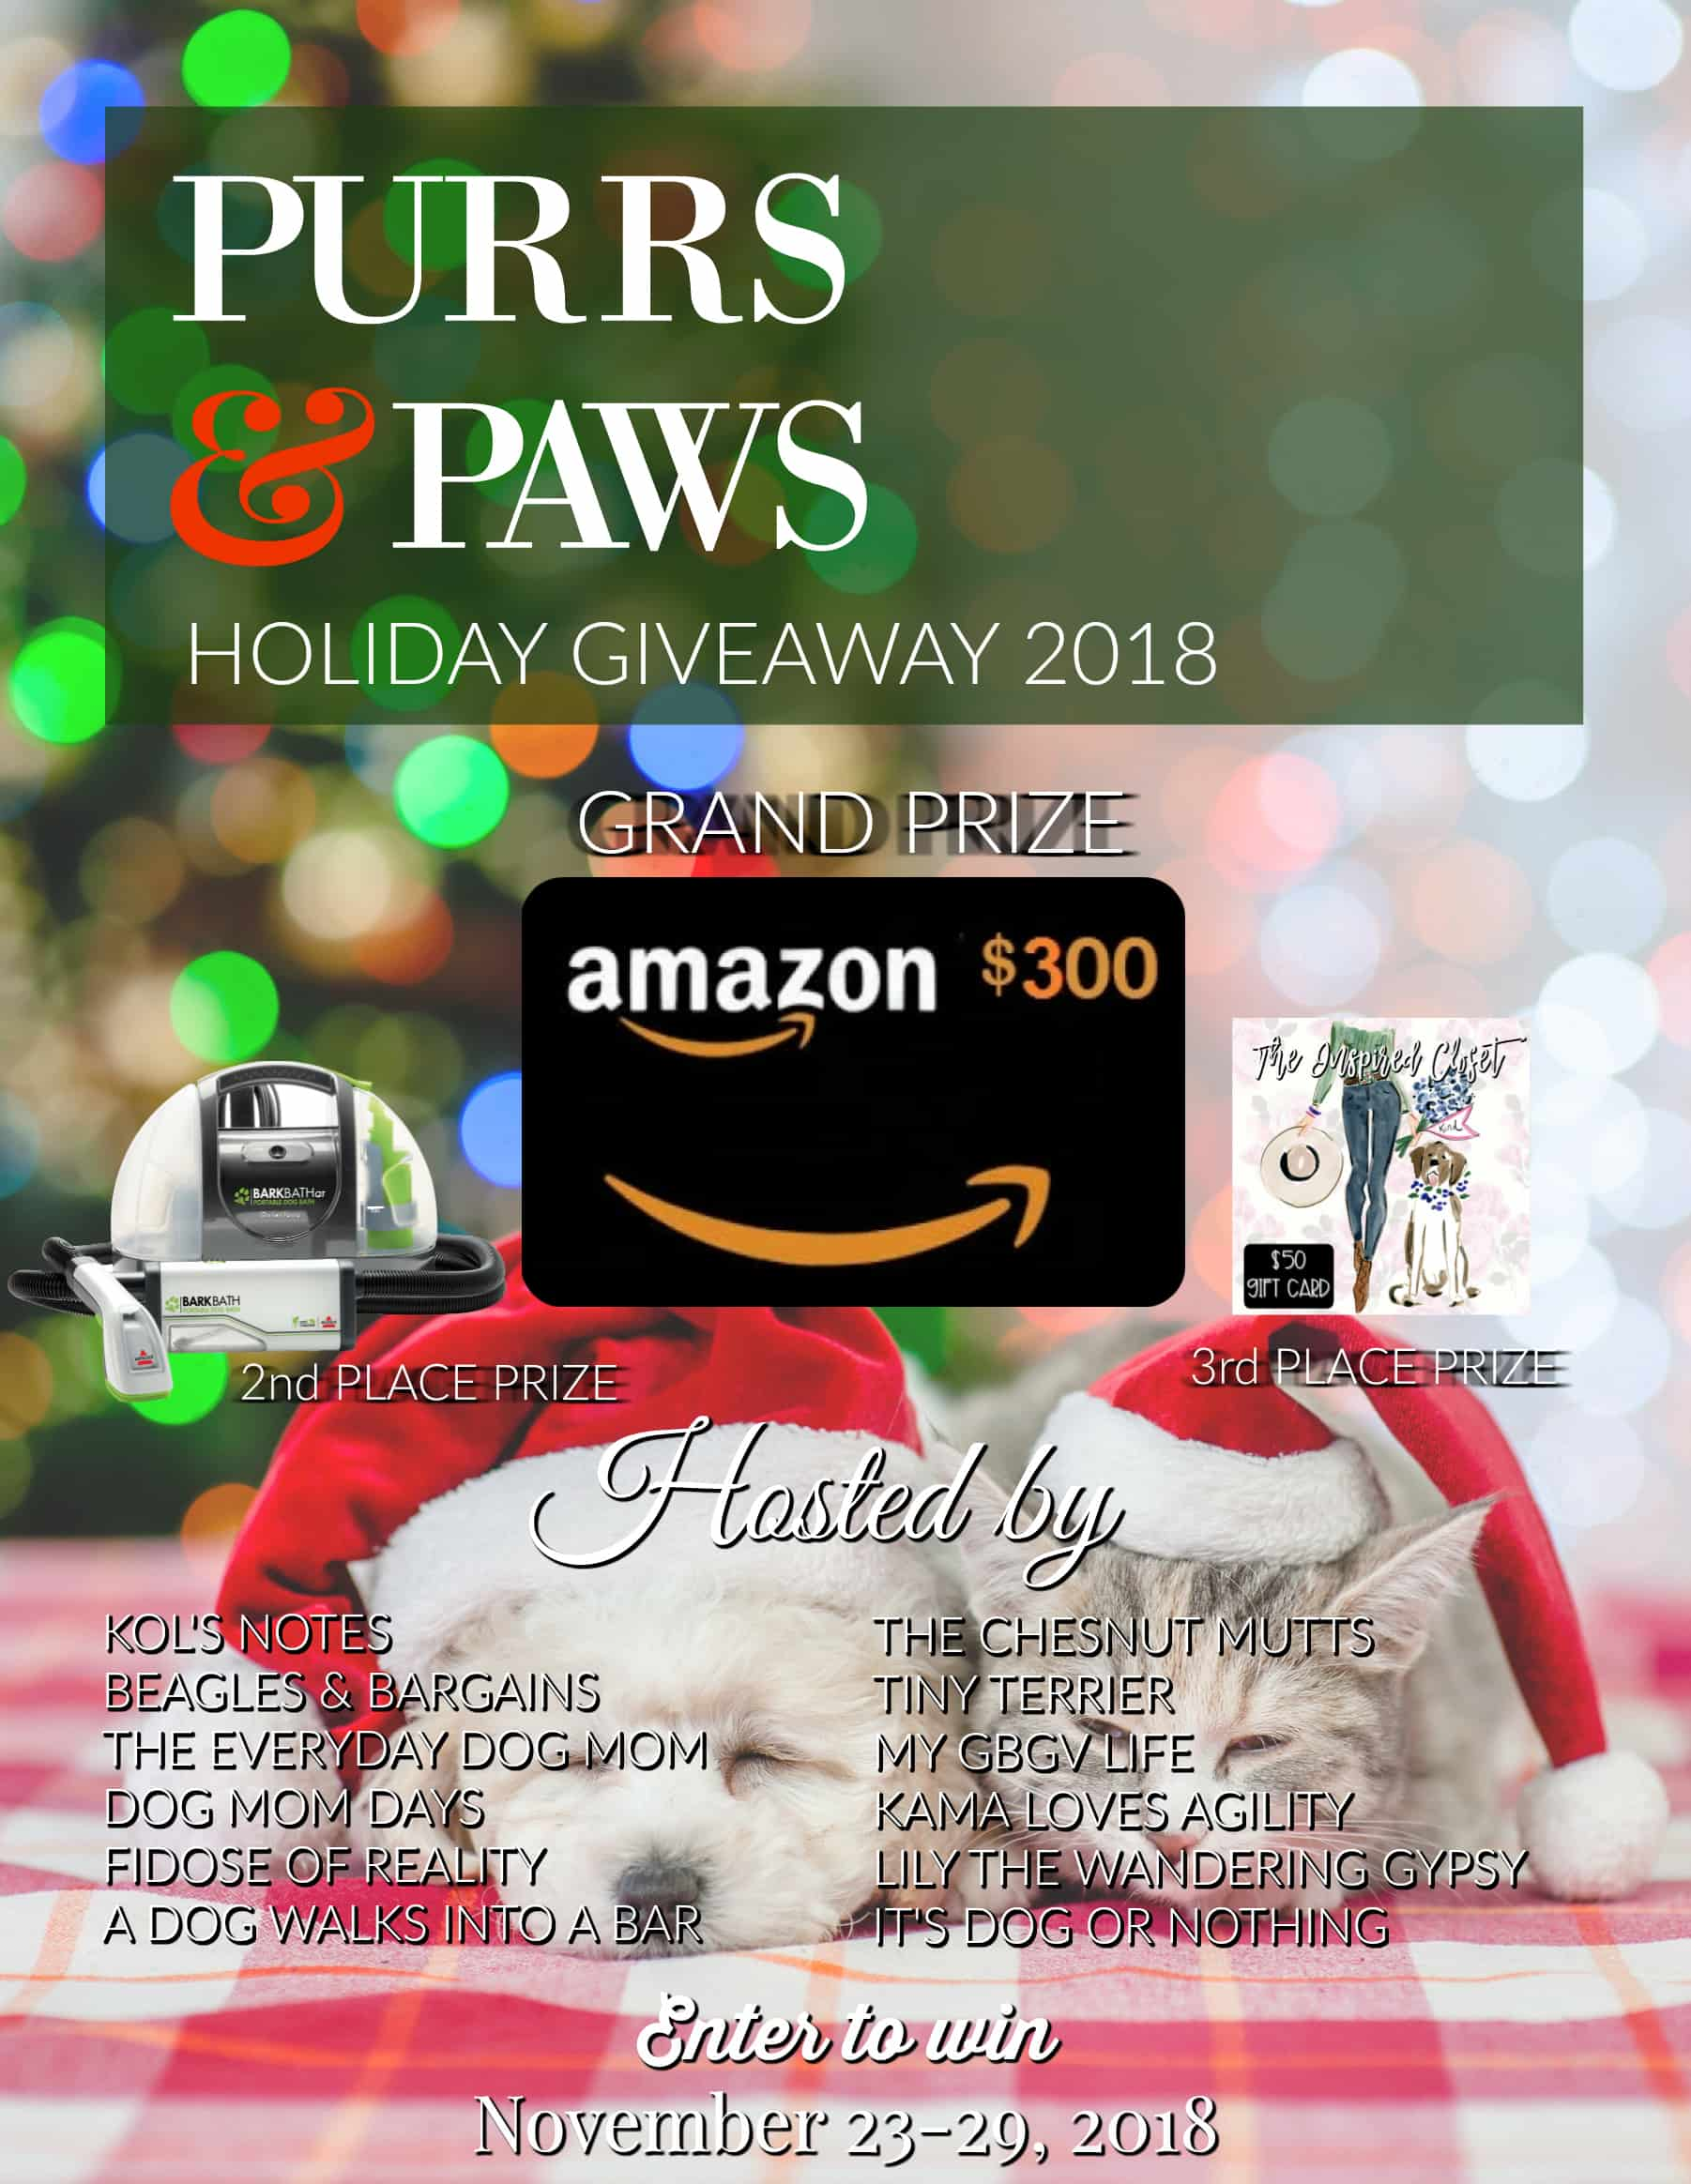 As Christmas is coming up, what better way to celebrate than with your chance to win some amazing prizes including a $300 Amazon Gift Card!